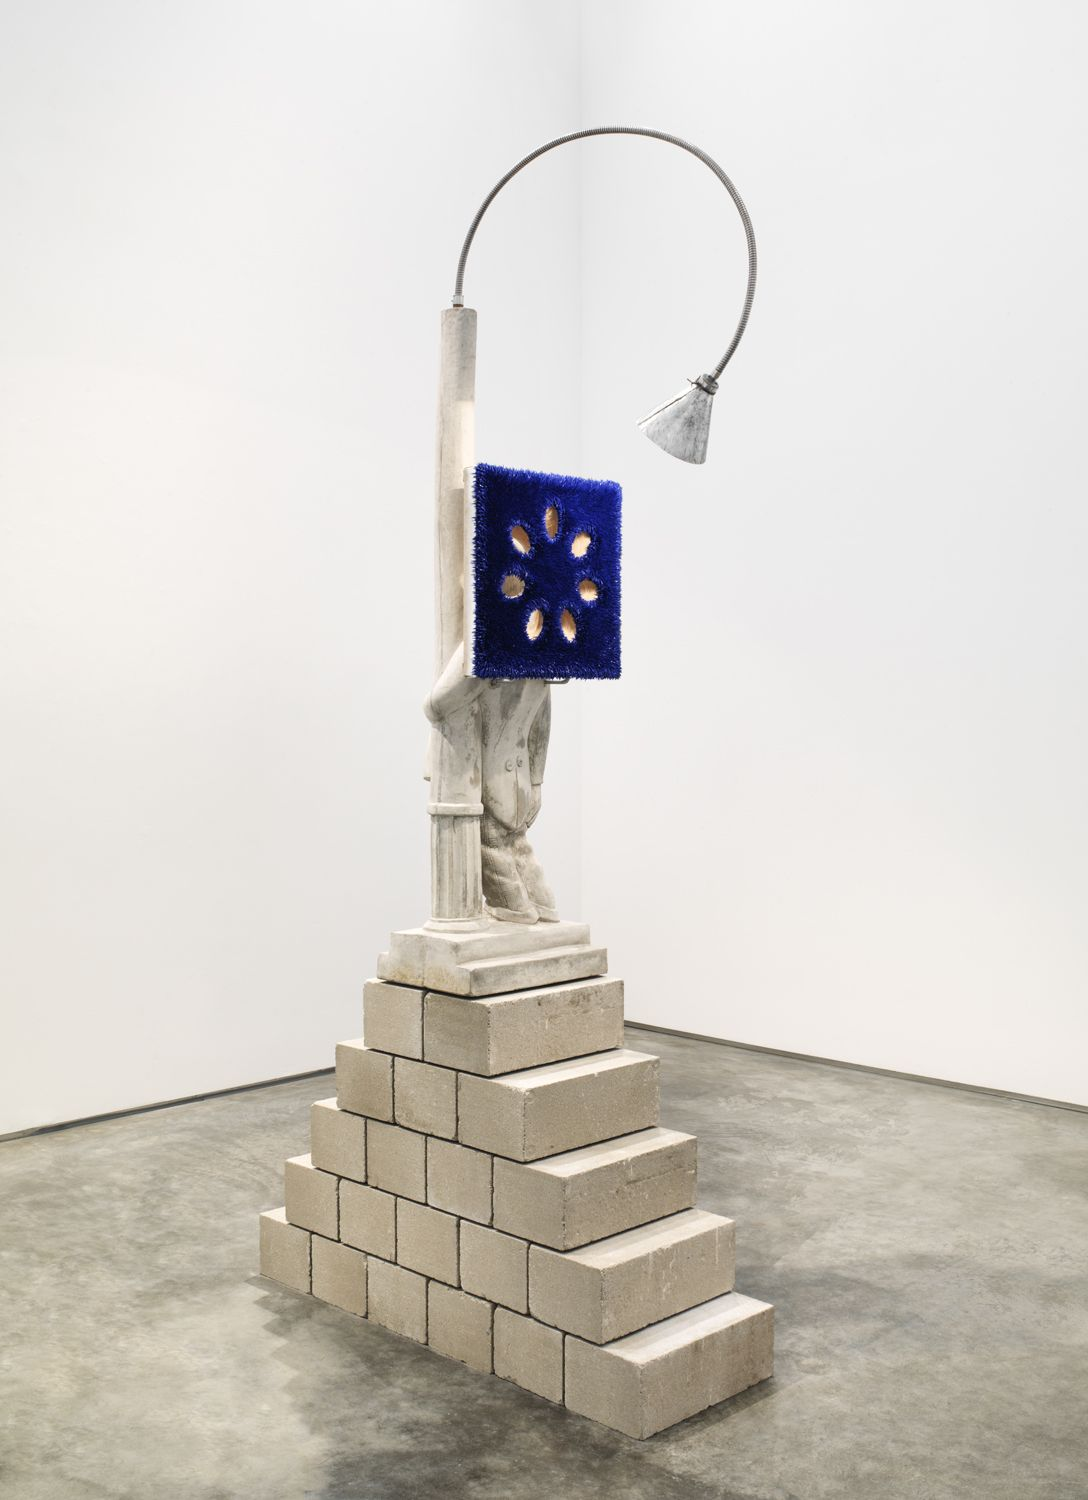 donald moffett's sculptural artworks featuring a painting on a lamp and concrete base